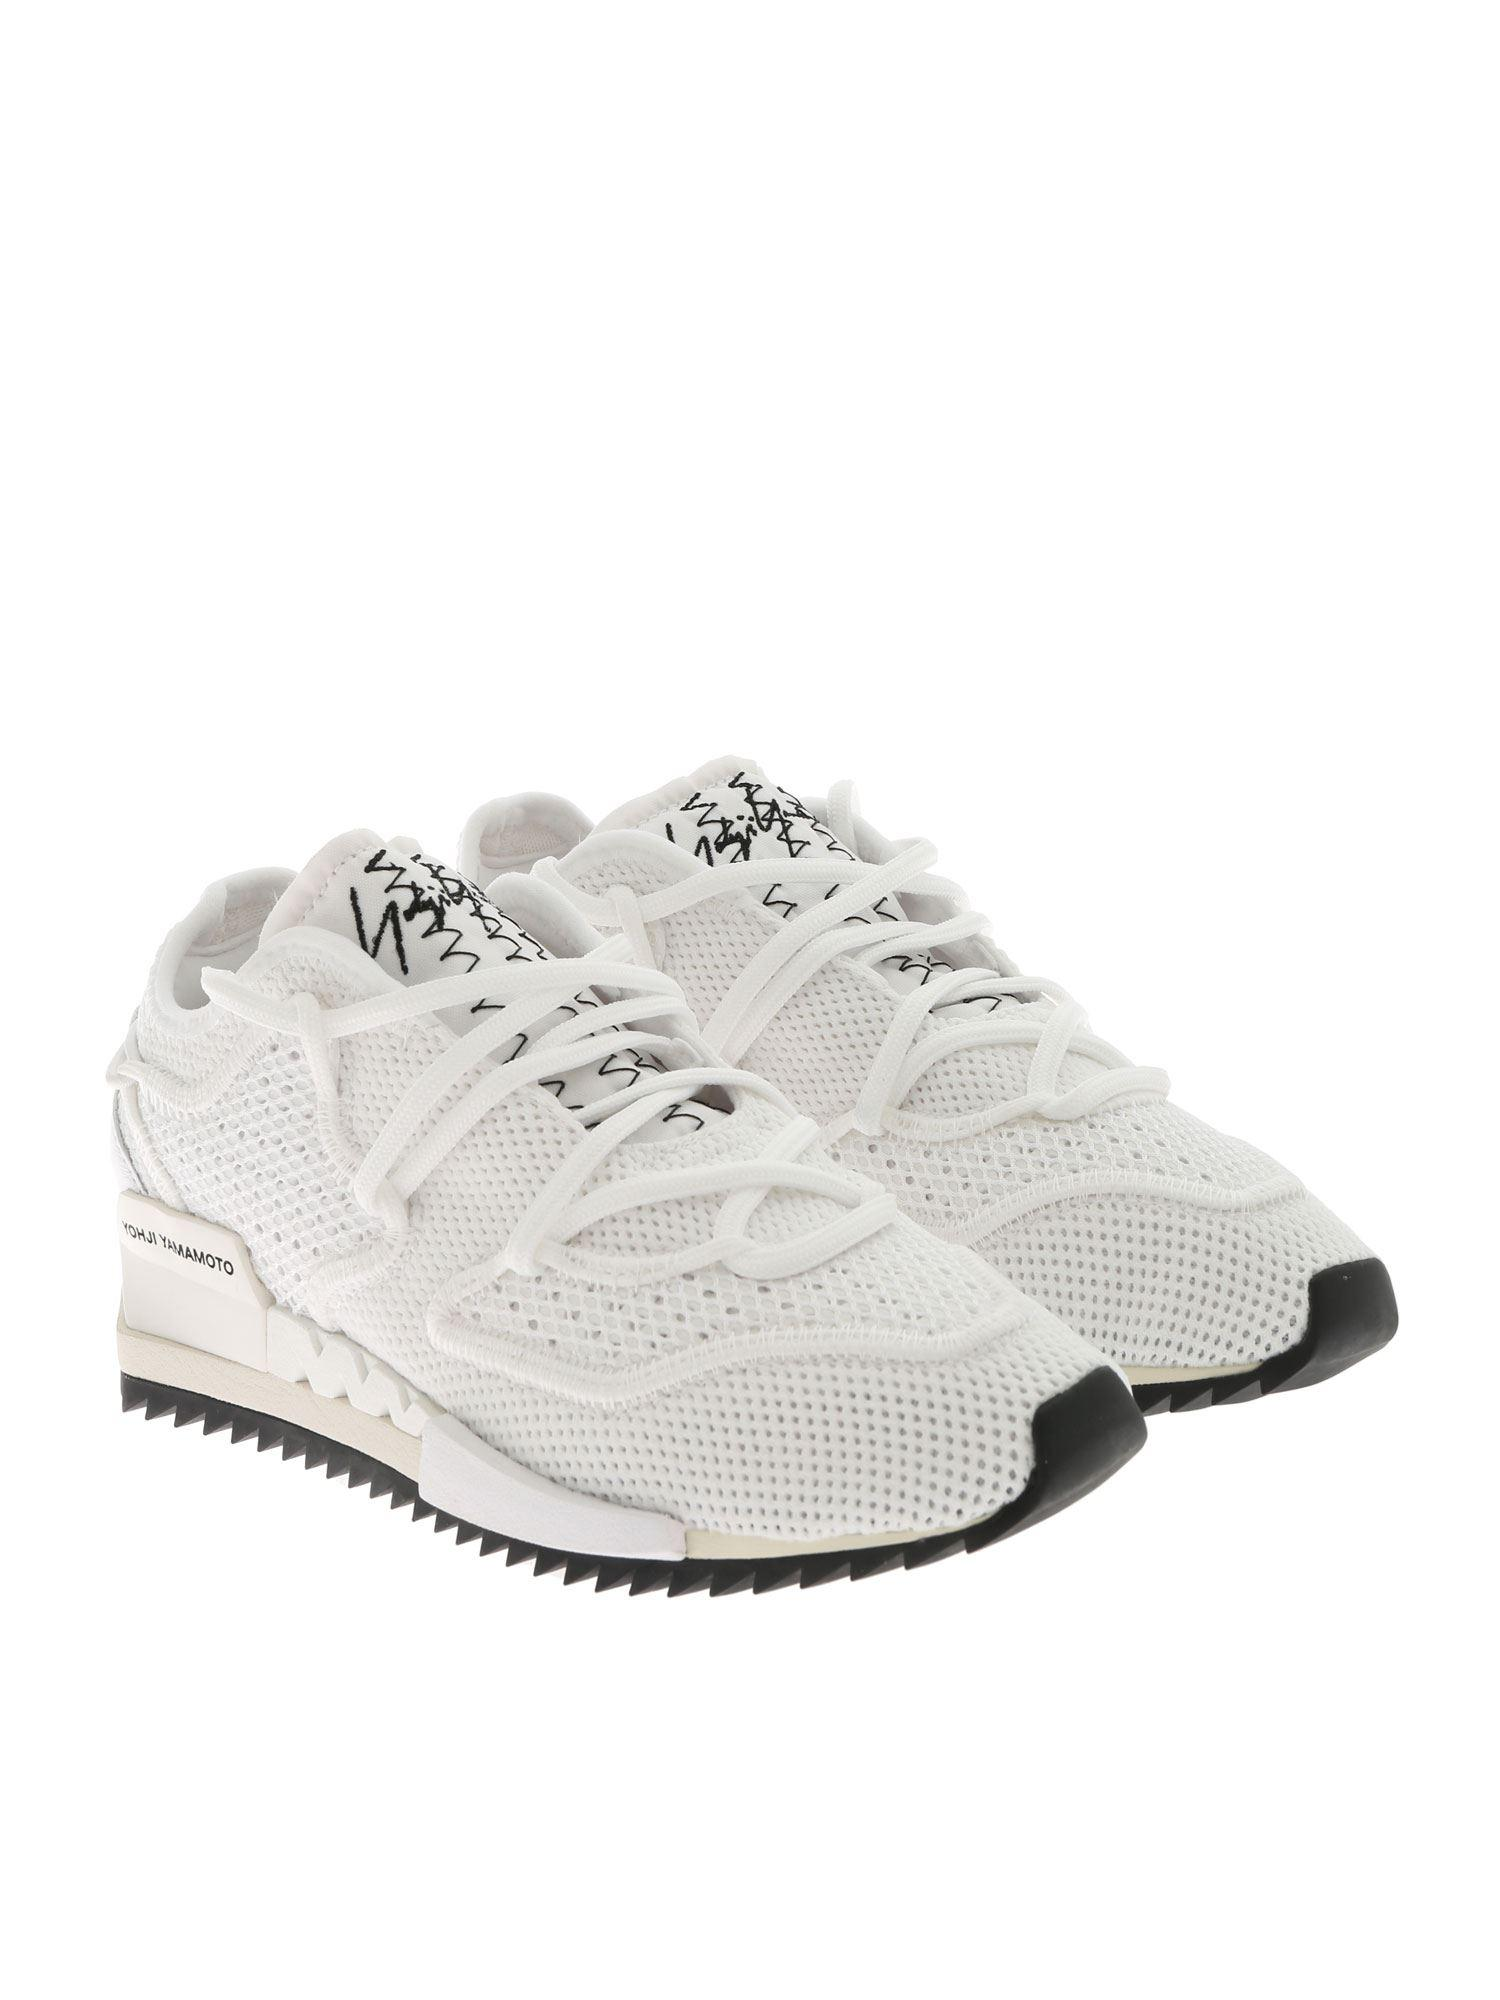 a17a202c64bef Y-3 - White Harigane Ii for Men - Lyst. View fullscreen